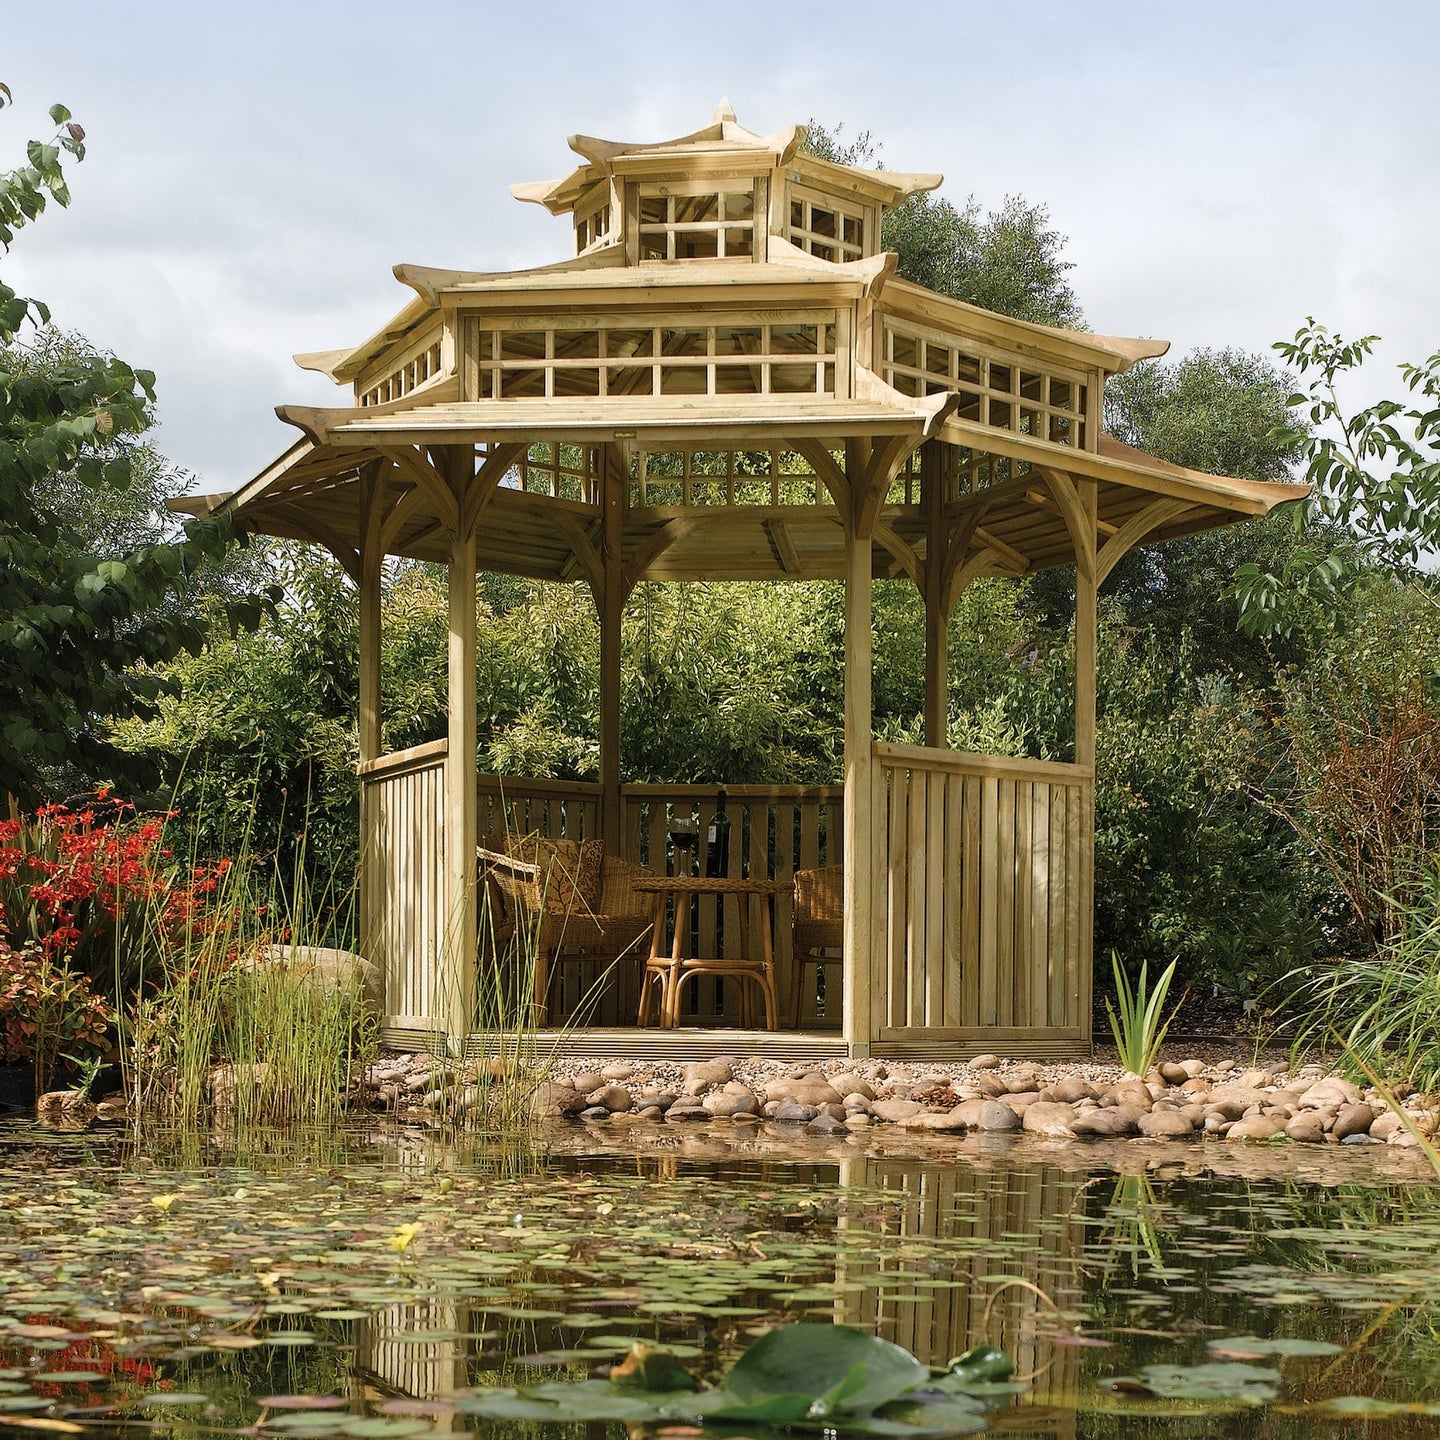 The Atcham Garden Building Pagoda